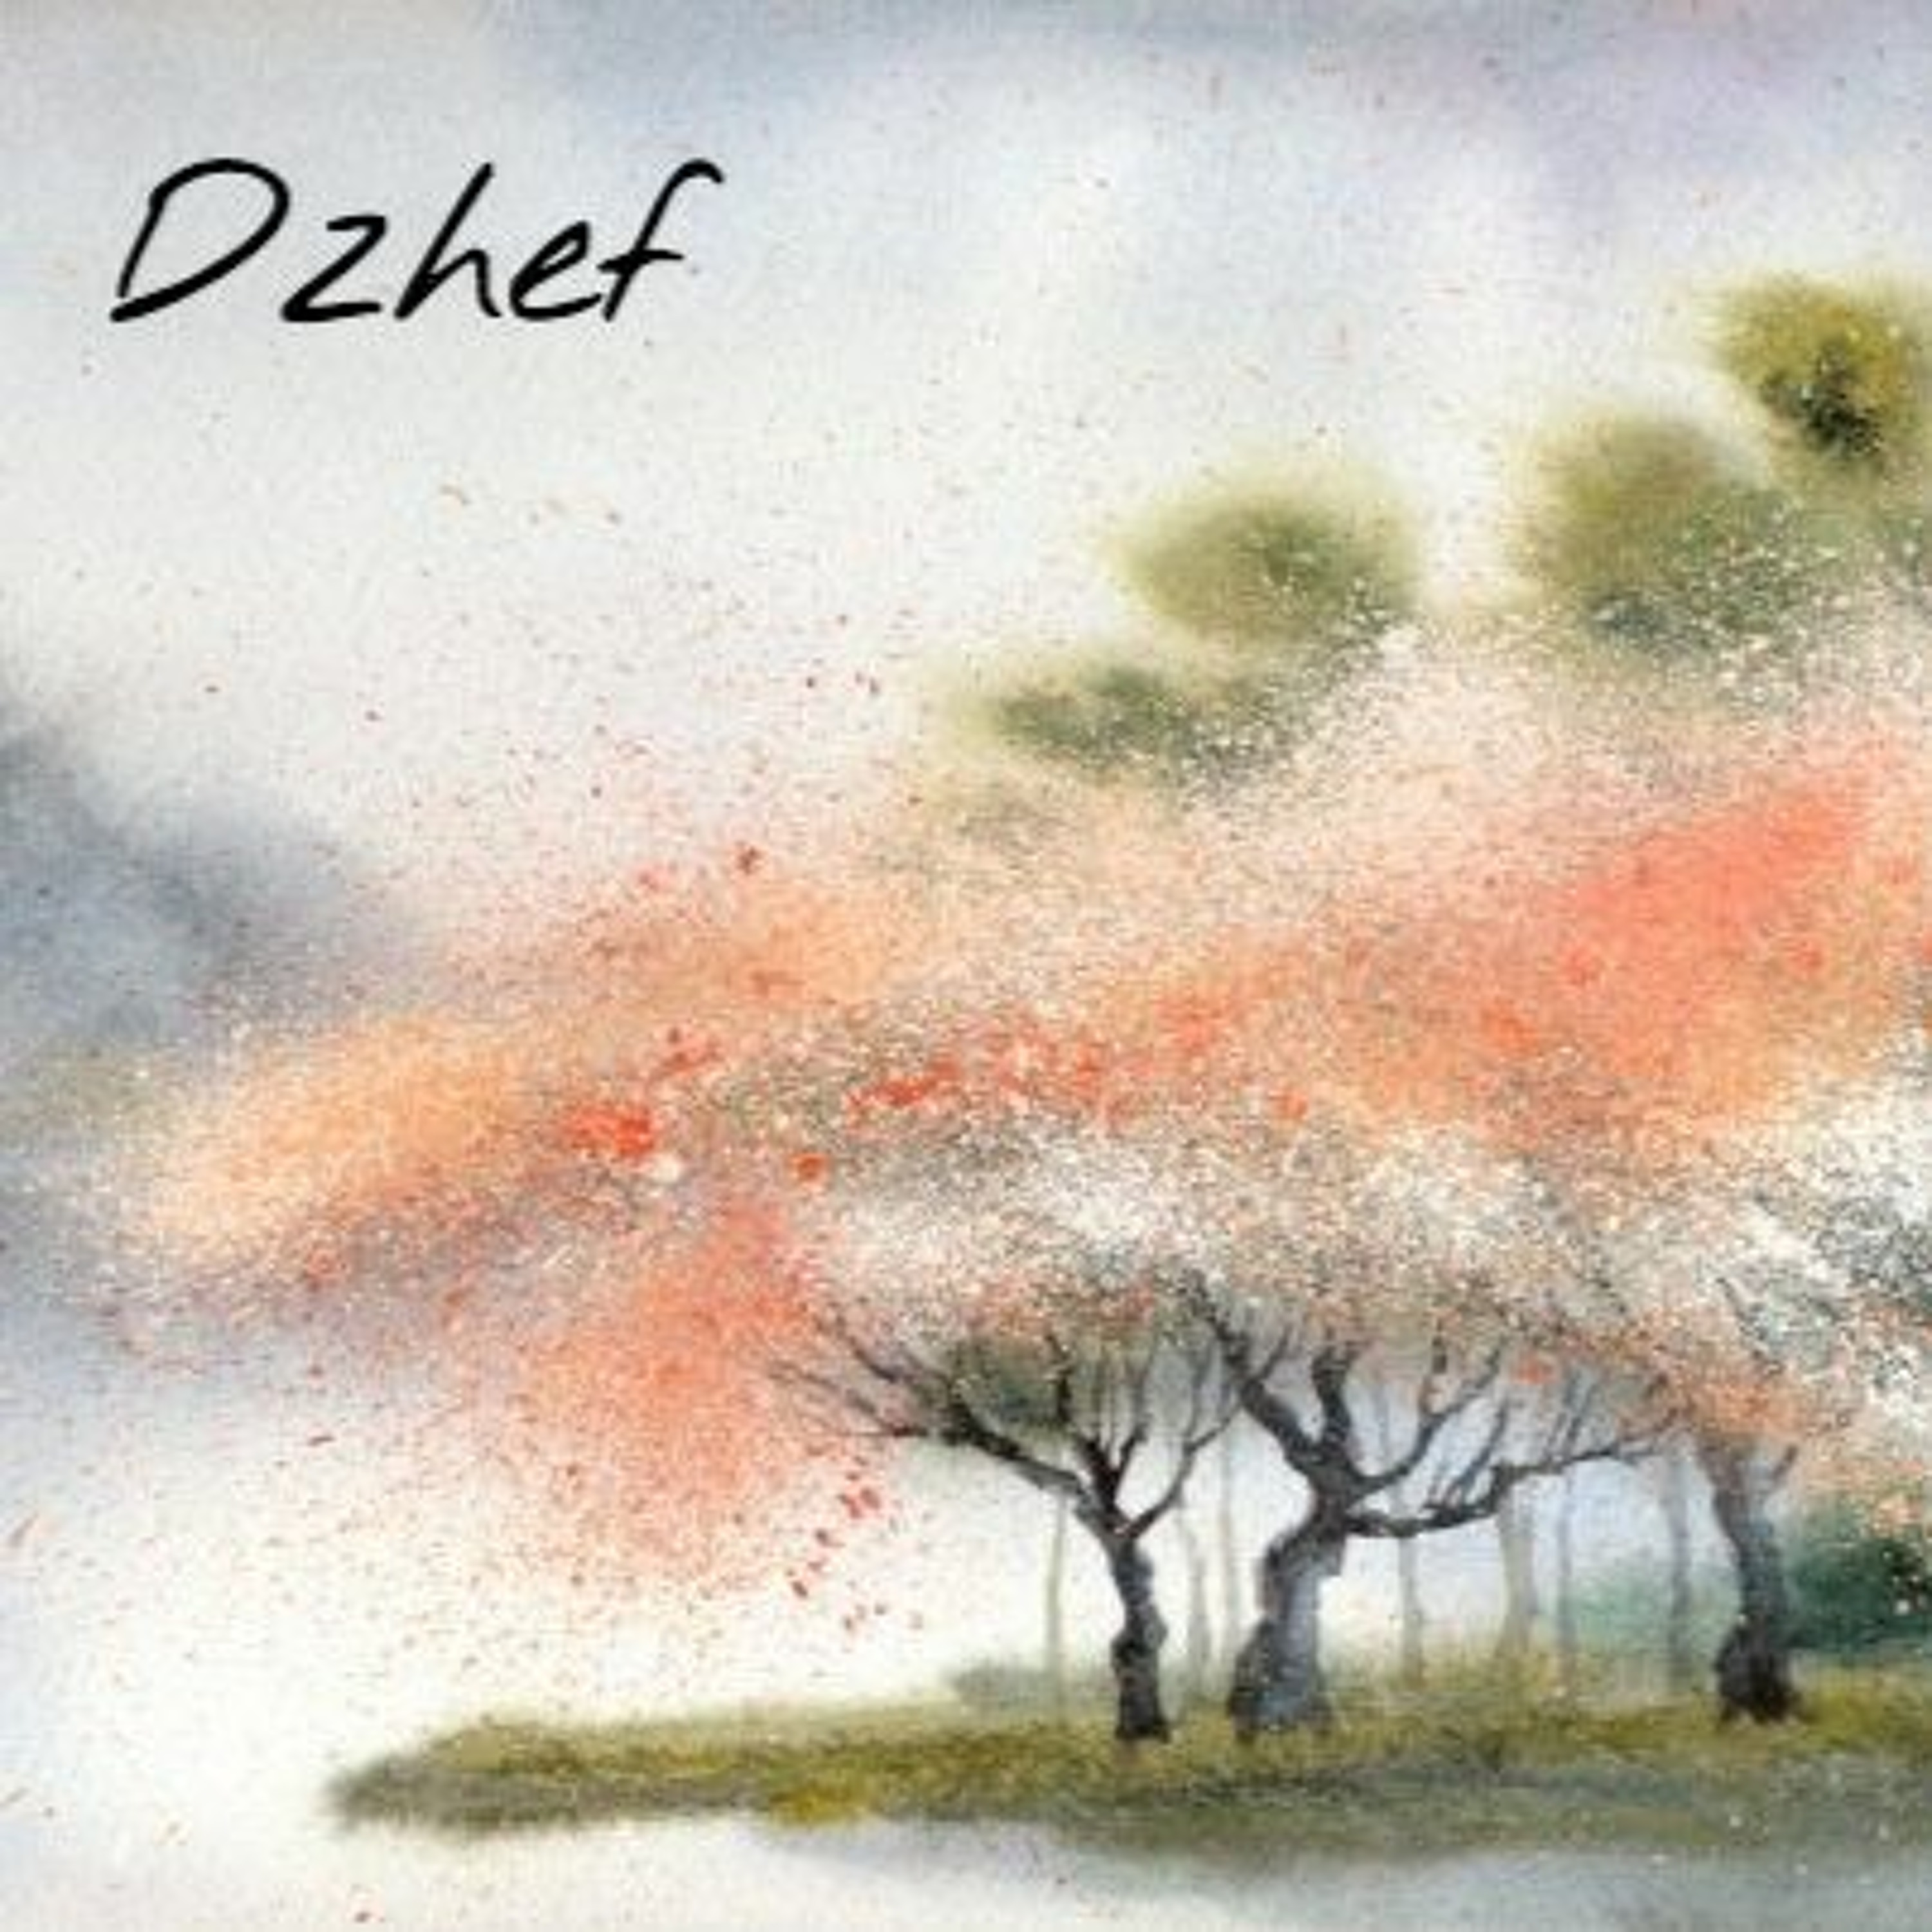 Canopy Sounds 105 - Dzhef